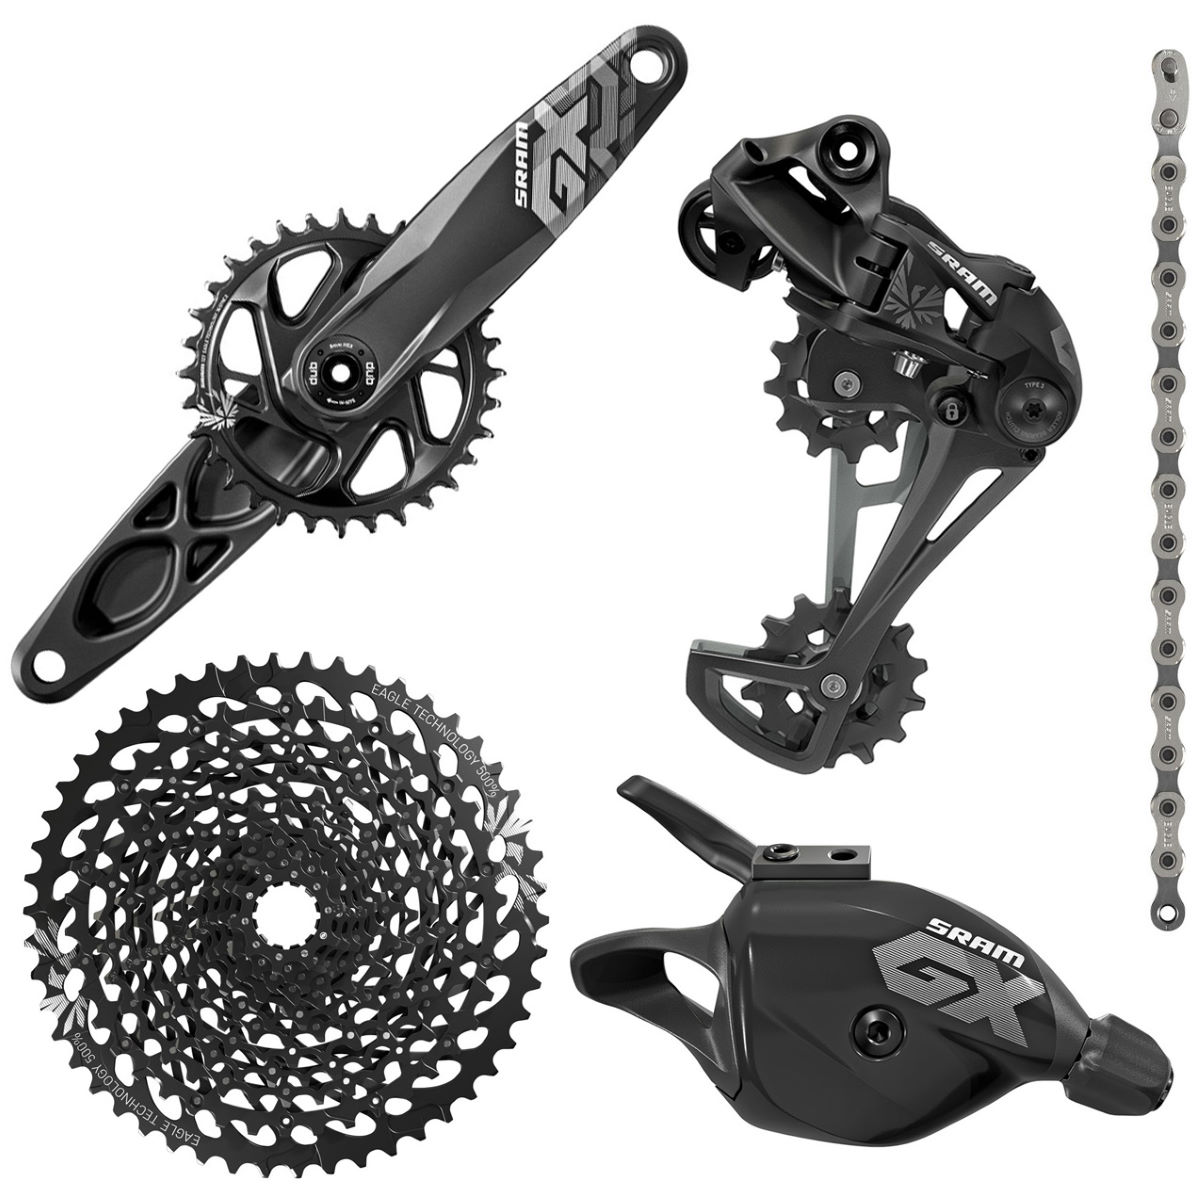 SRAM SRAM GX Eagle 12sp DUB Groupset   Groupsets